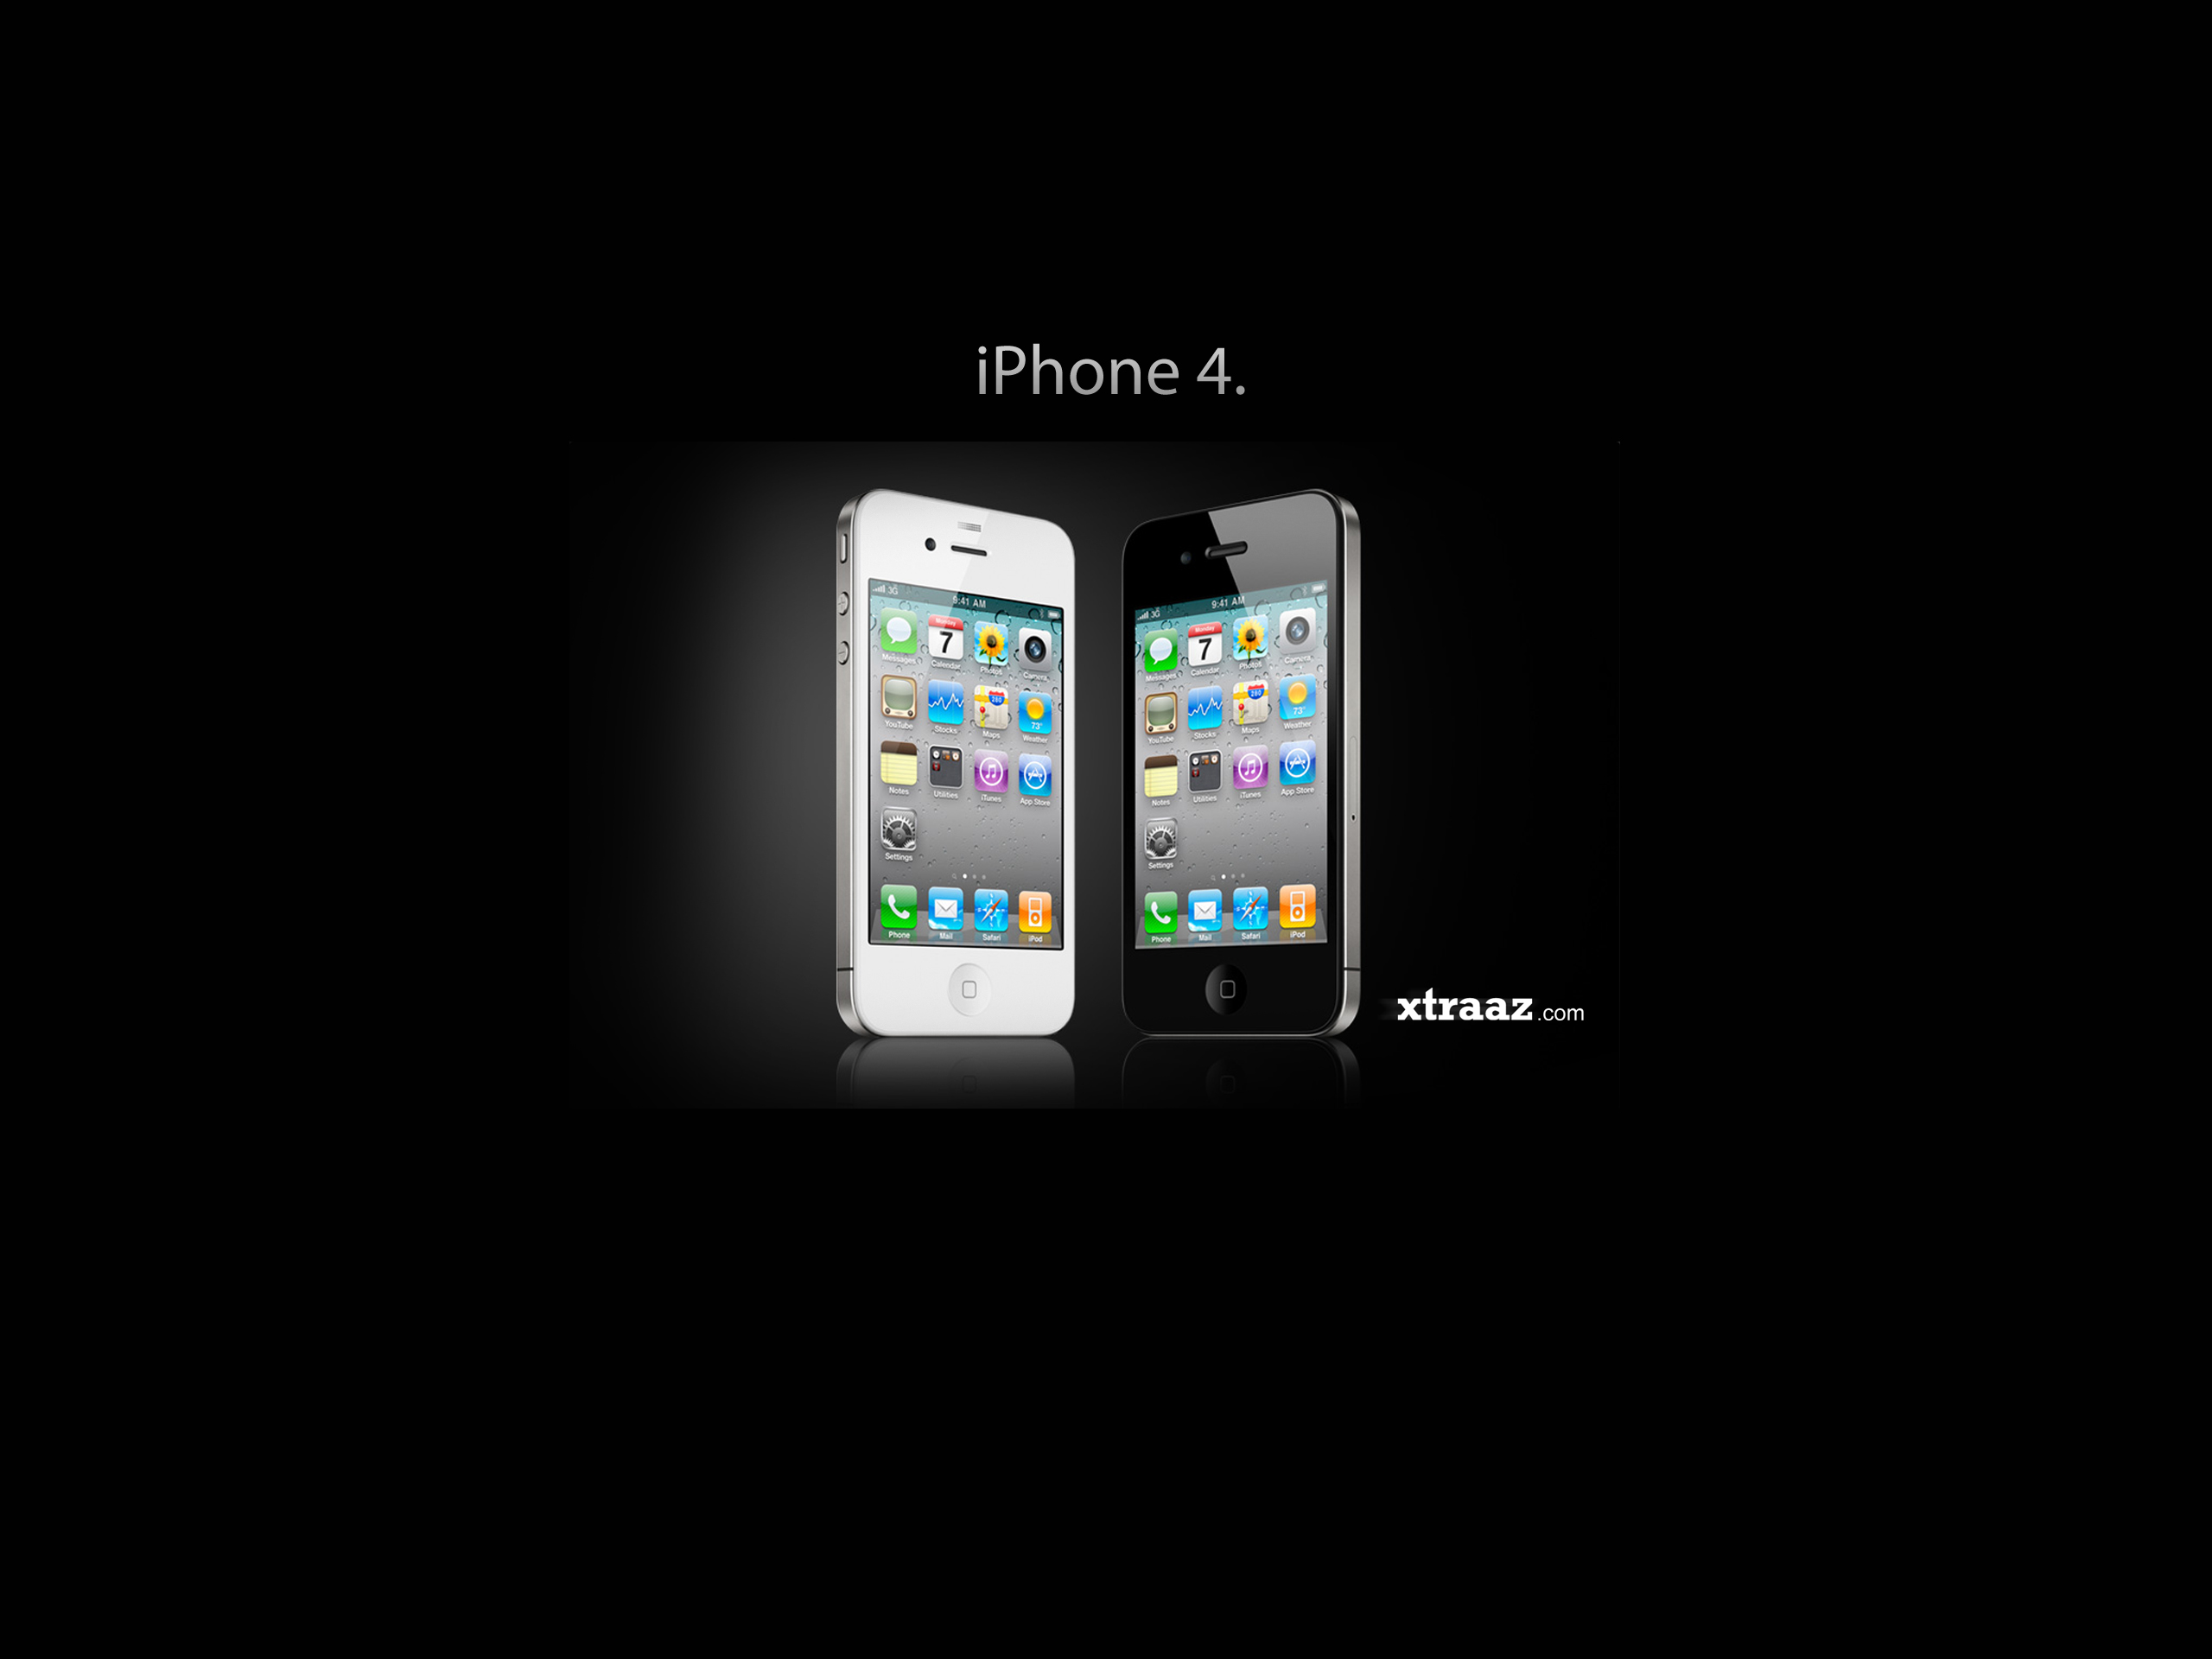 Animated Live HD Wallpapers on iPhone 4 Running iOS 4.x Video